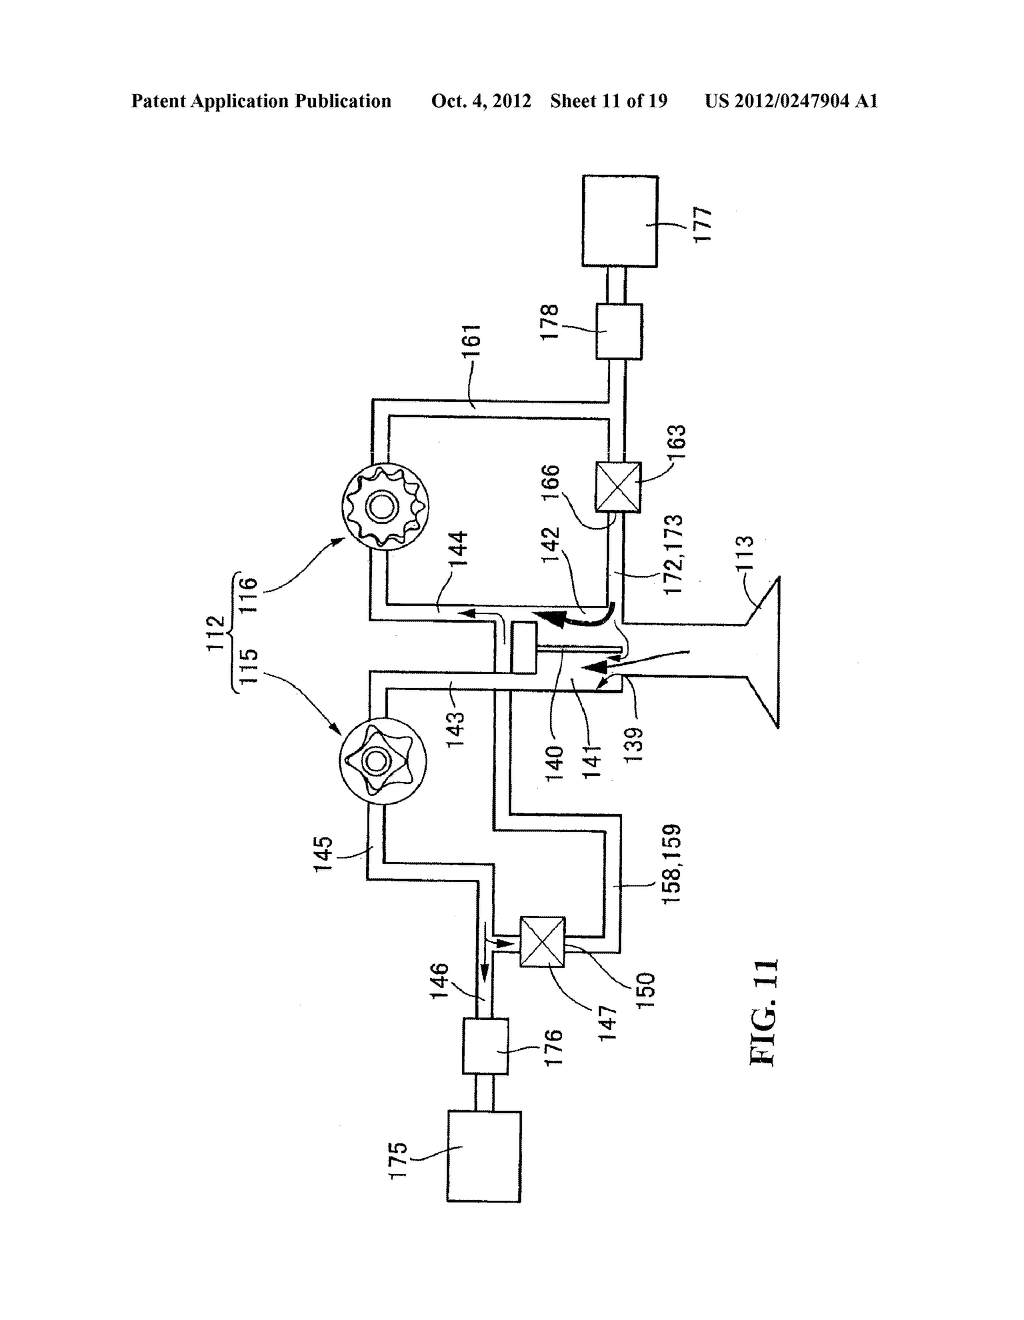 Internal Combustion Engine And Supplying Oil Path Structure For Hydraulic Clutch Diagram In Schematic Image 12